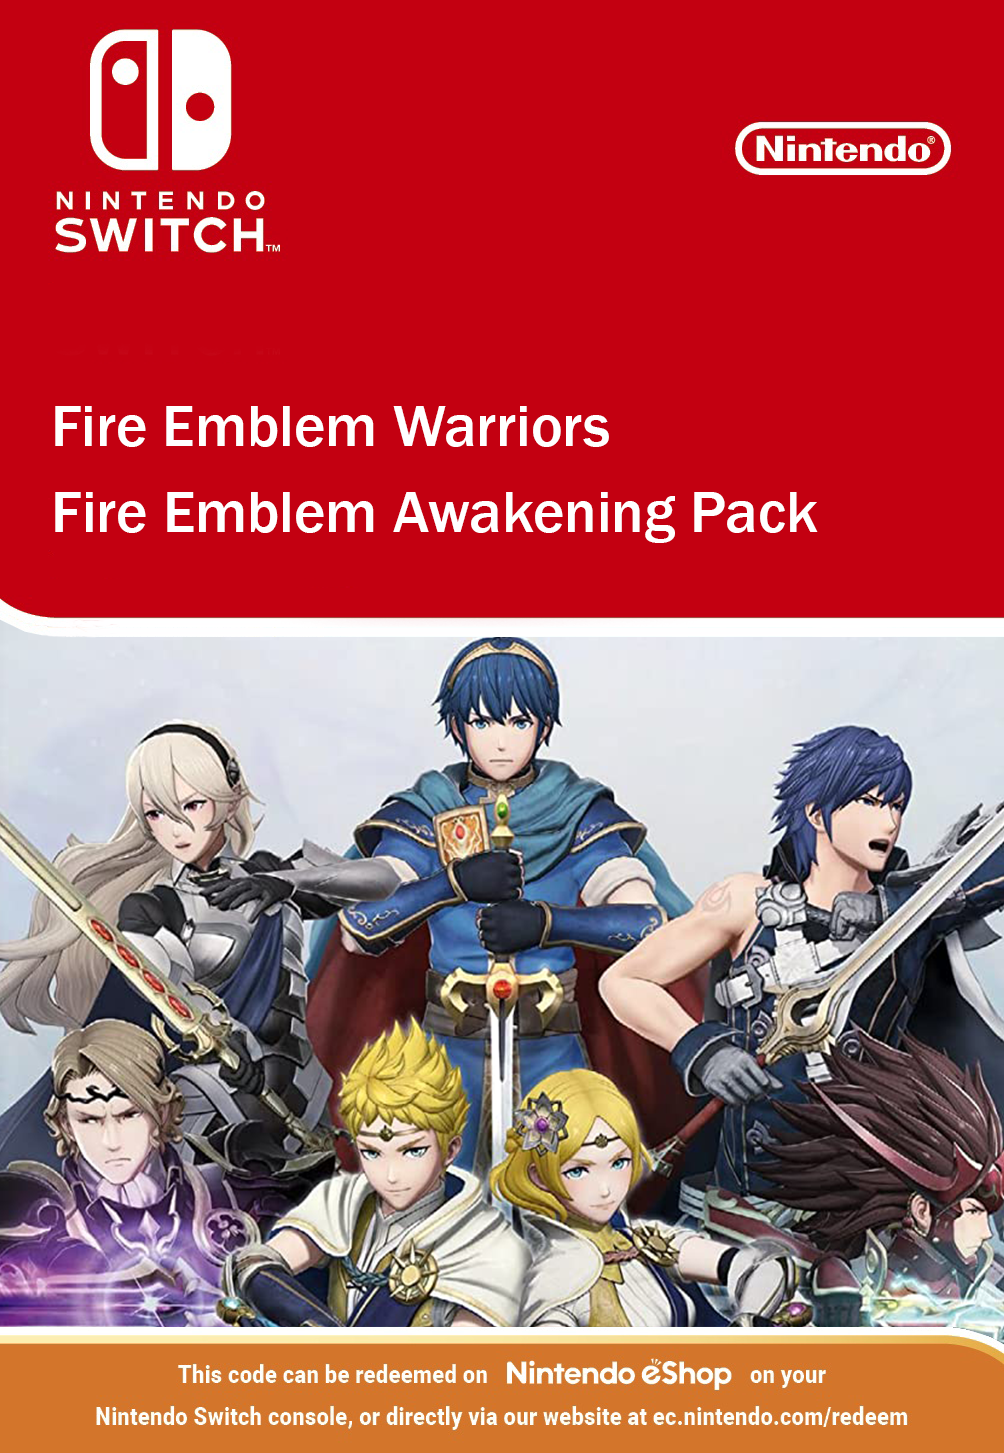 Fire Emblem Warriors: Fire Emblem Awakening Pack DLC Nintendo Switch